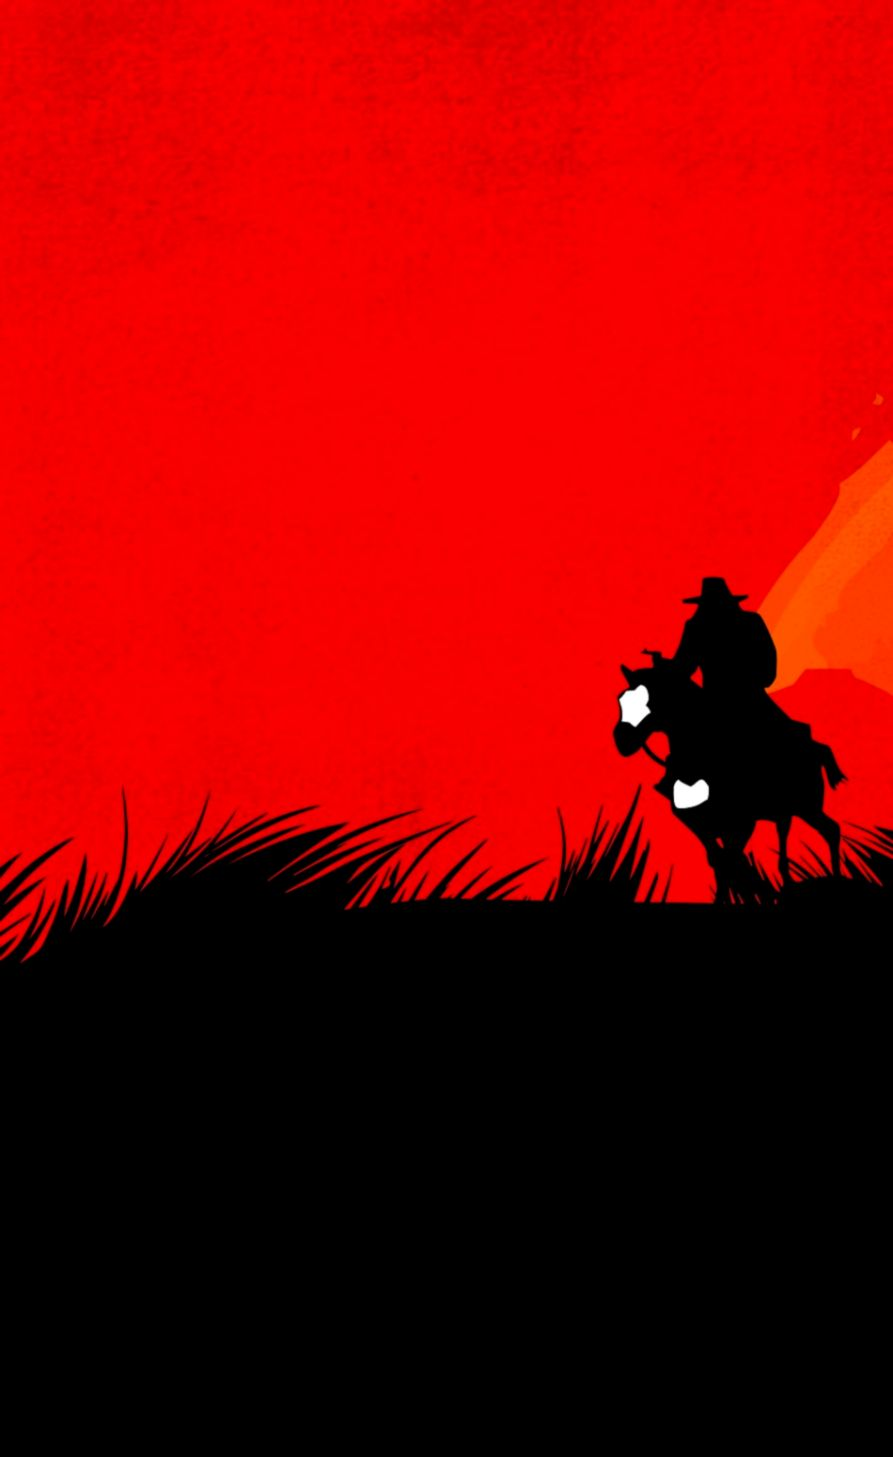 Red Dead Redemption 2 Wallpaper Iphone Posted By Ethan Walker